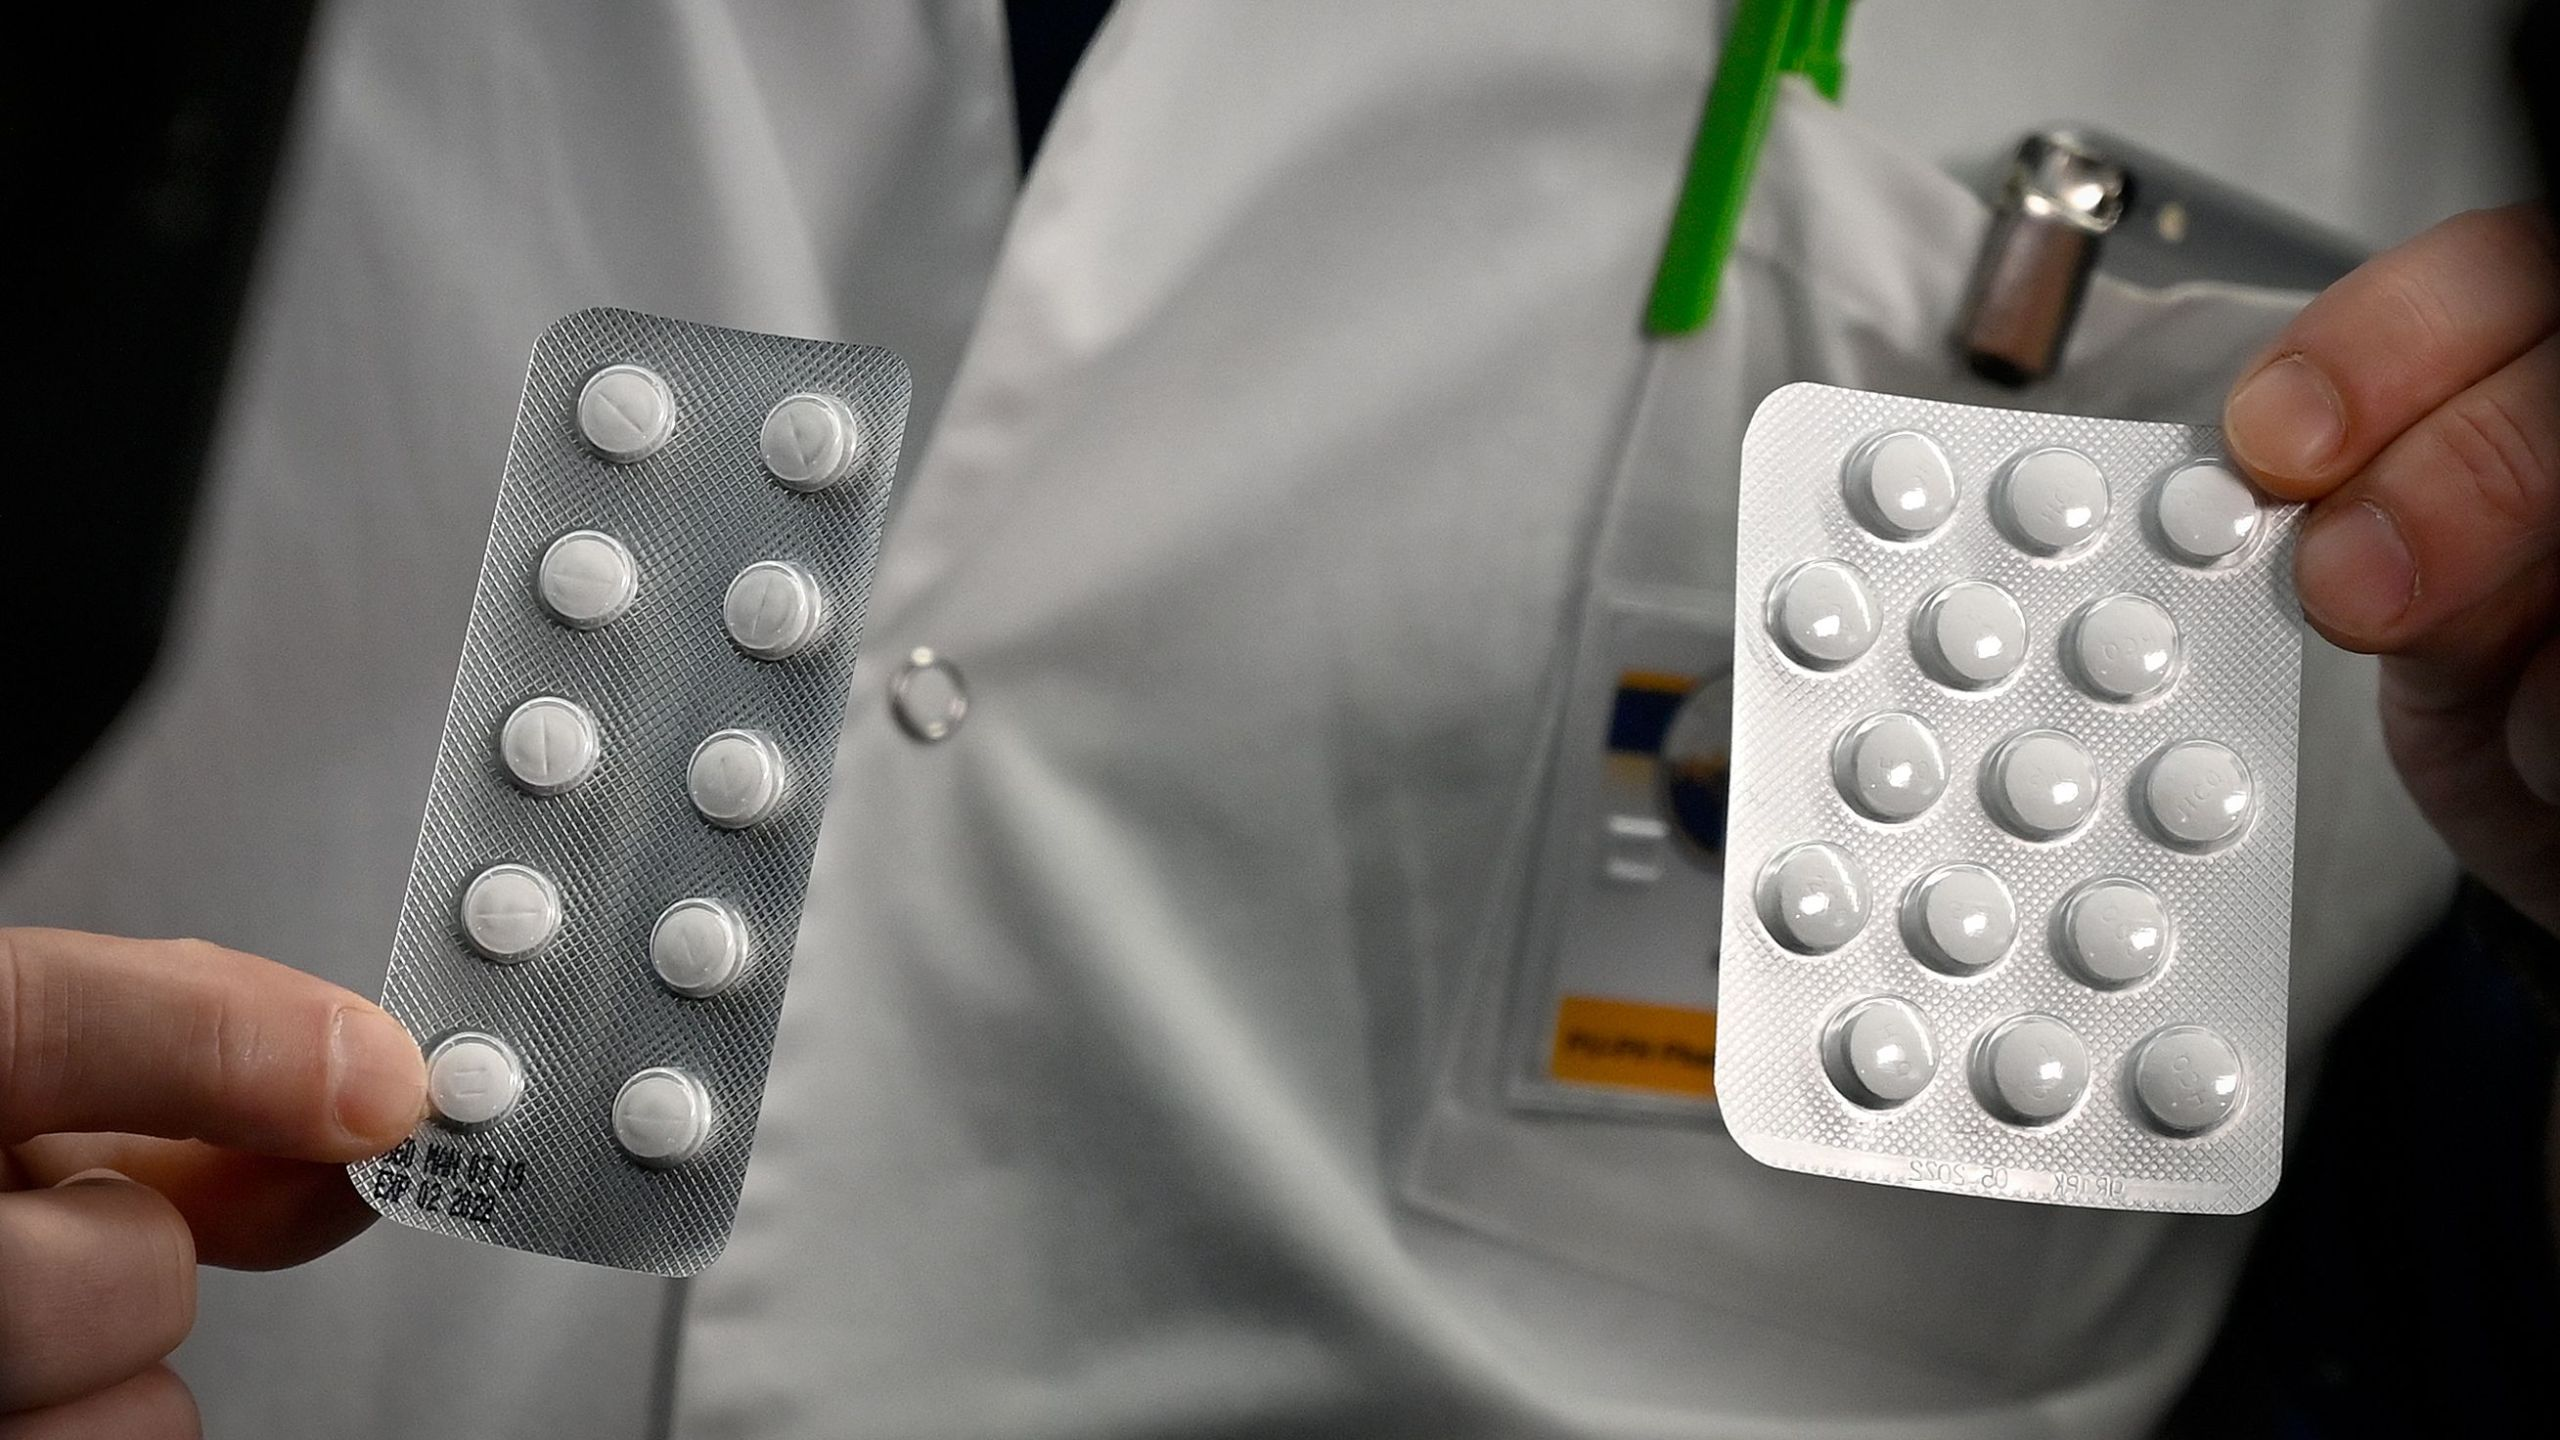 Doctor holds two packs of chloroquine pills